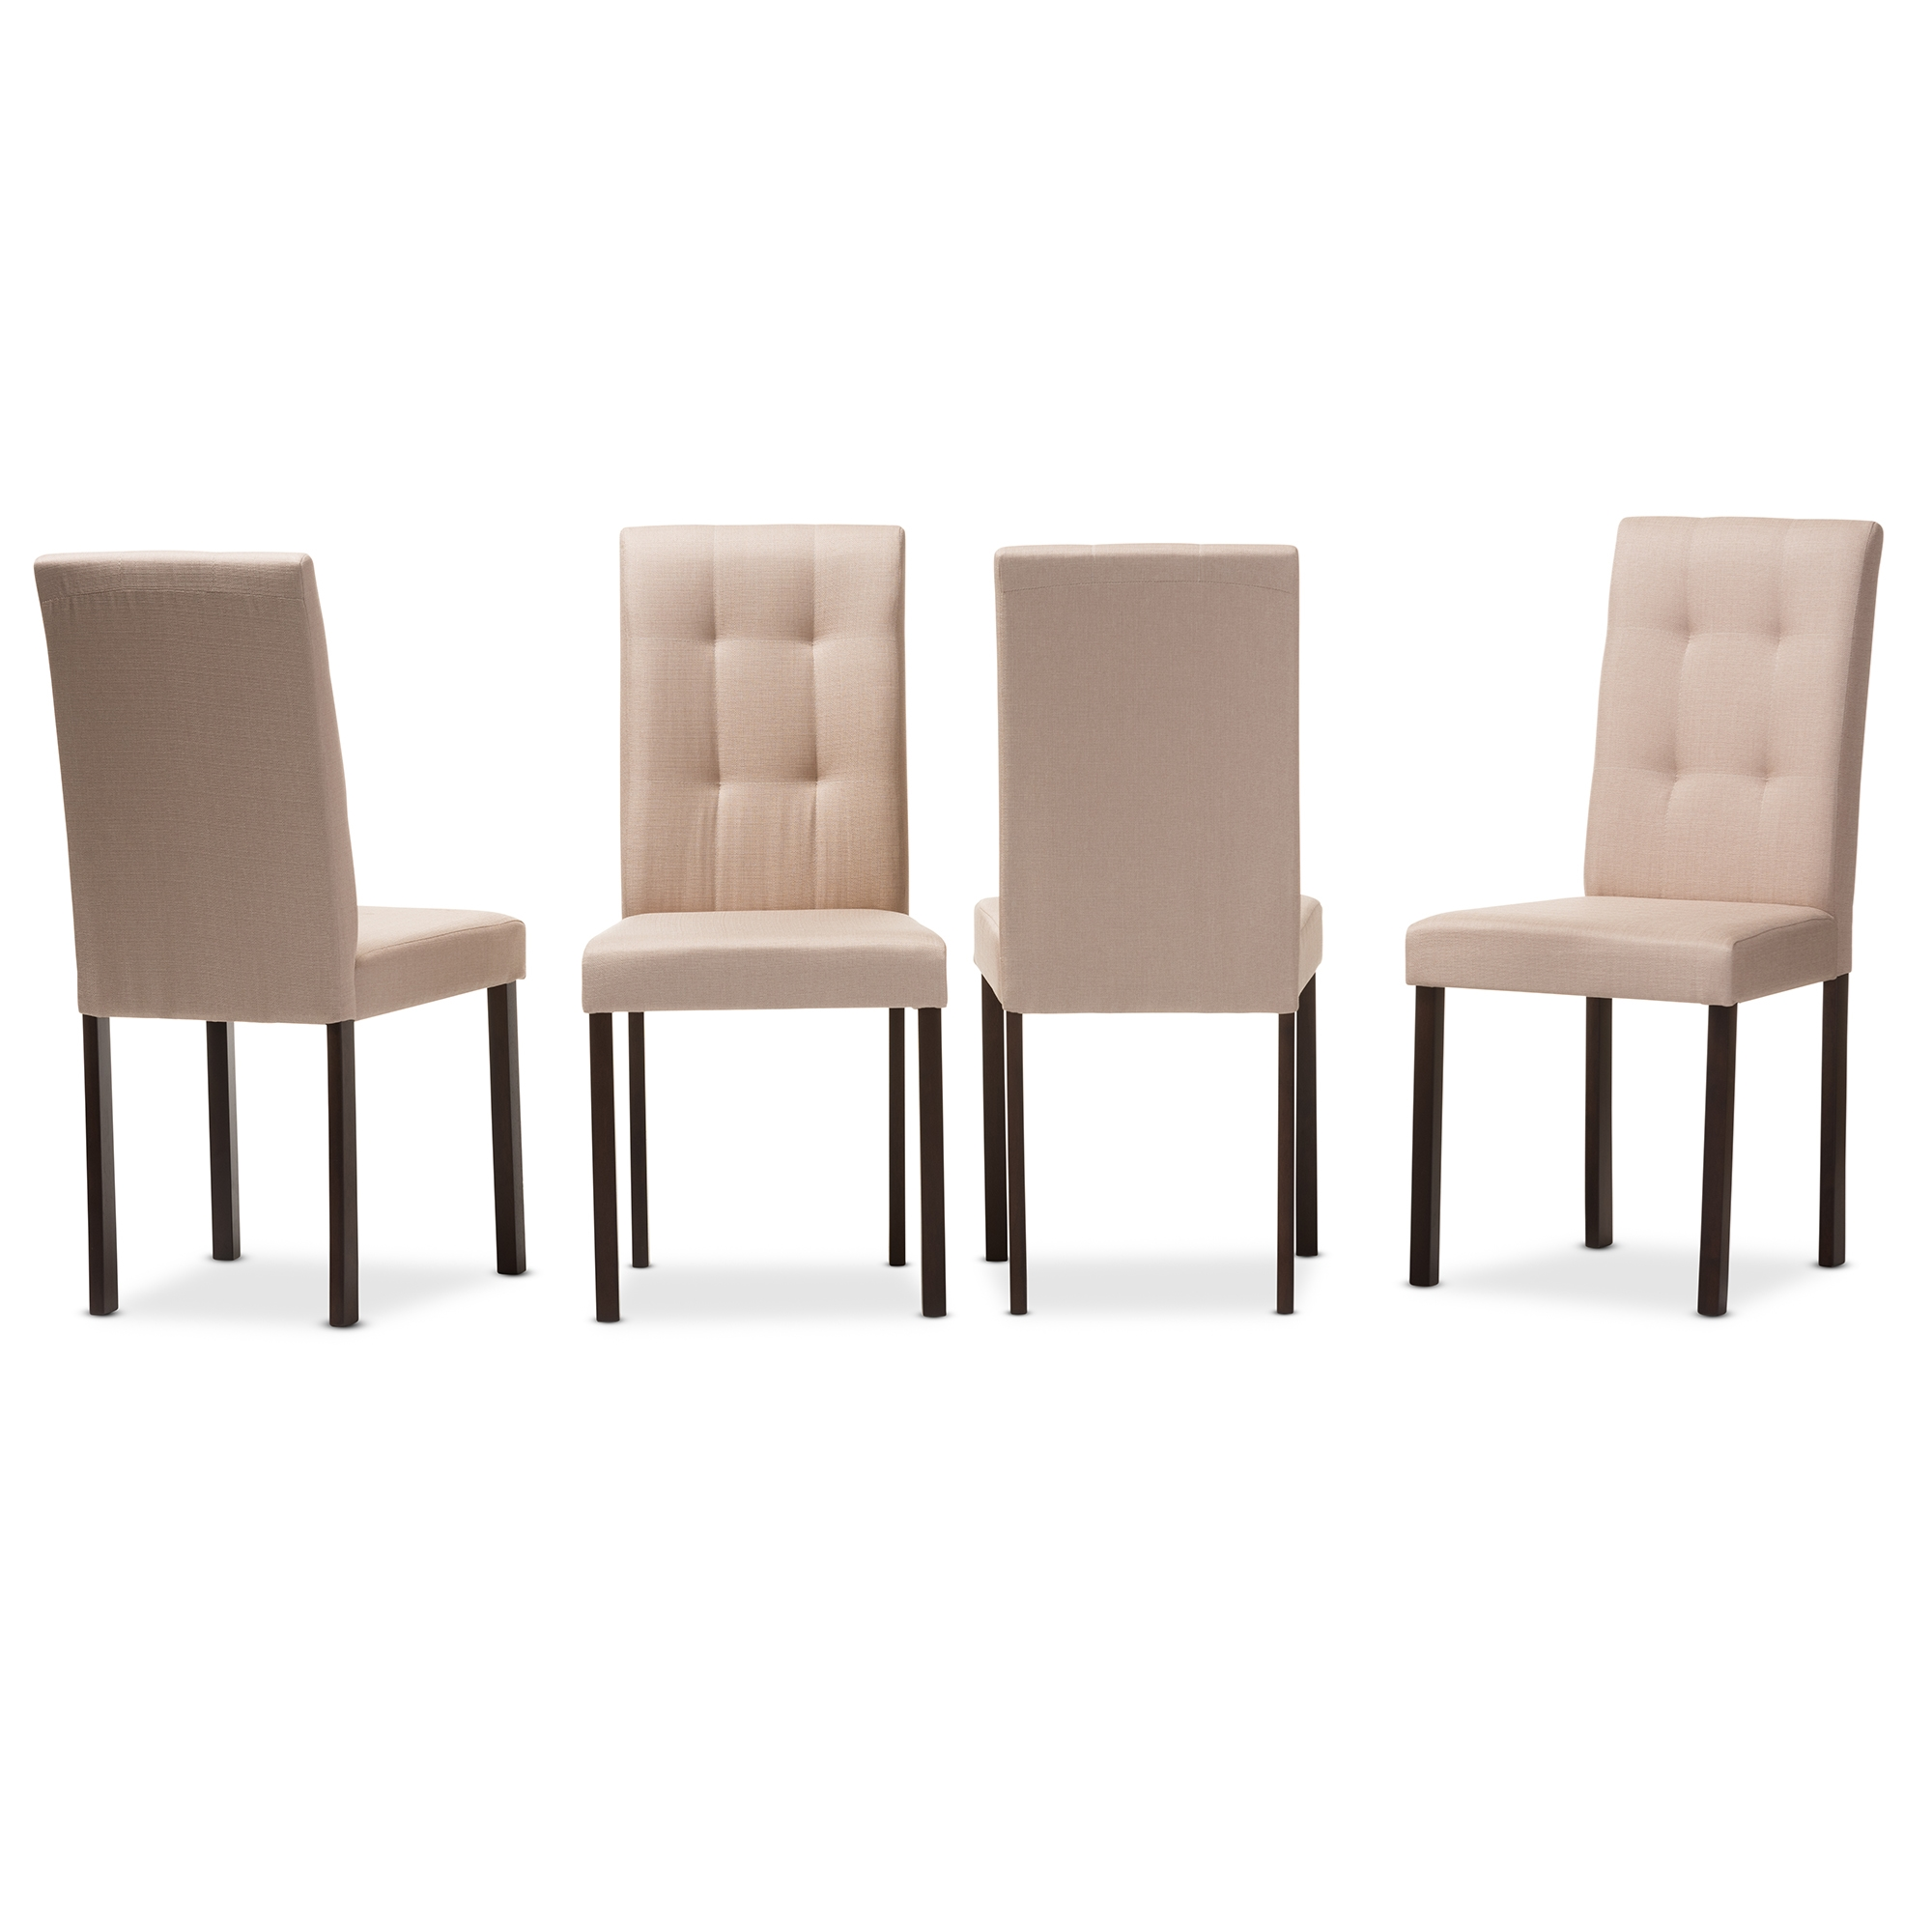 Baxton Studio Andrew Modern And Contemporary Beige Fabric Upholstered  Grid Tufting Dining Chair   IEAndrew ...